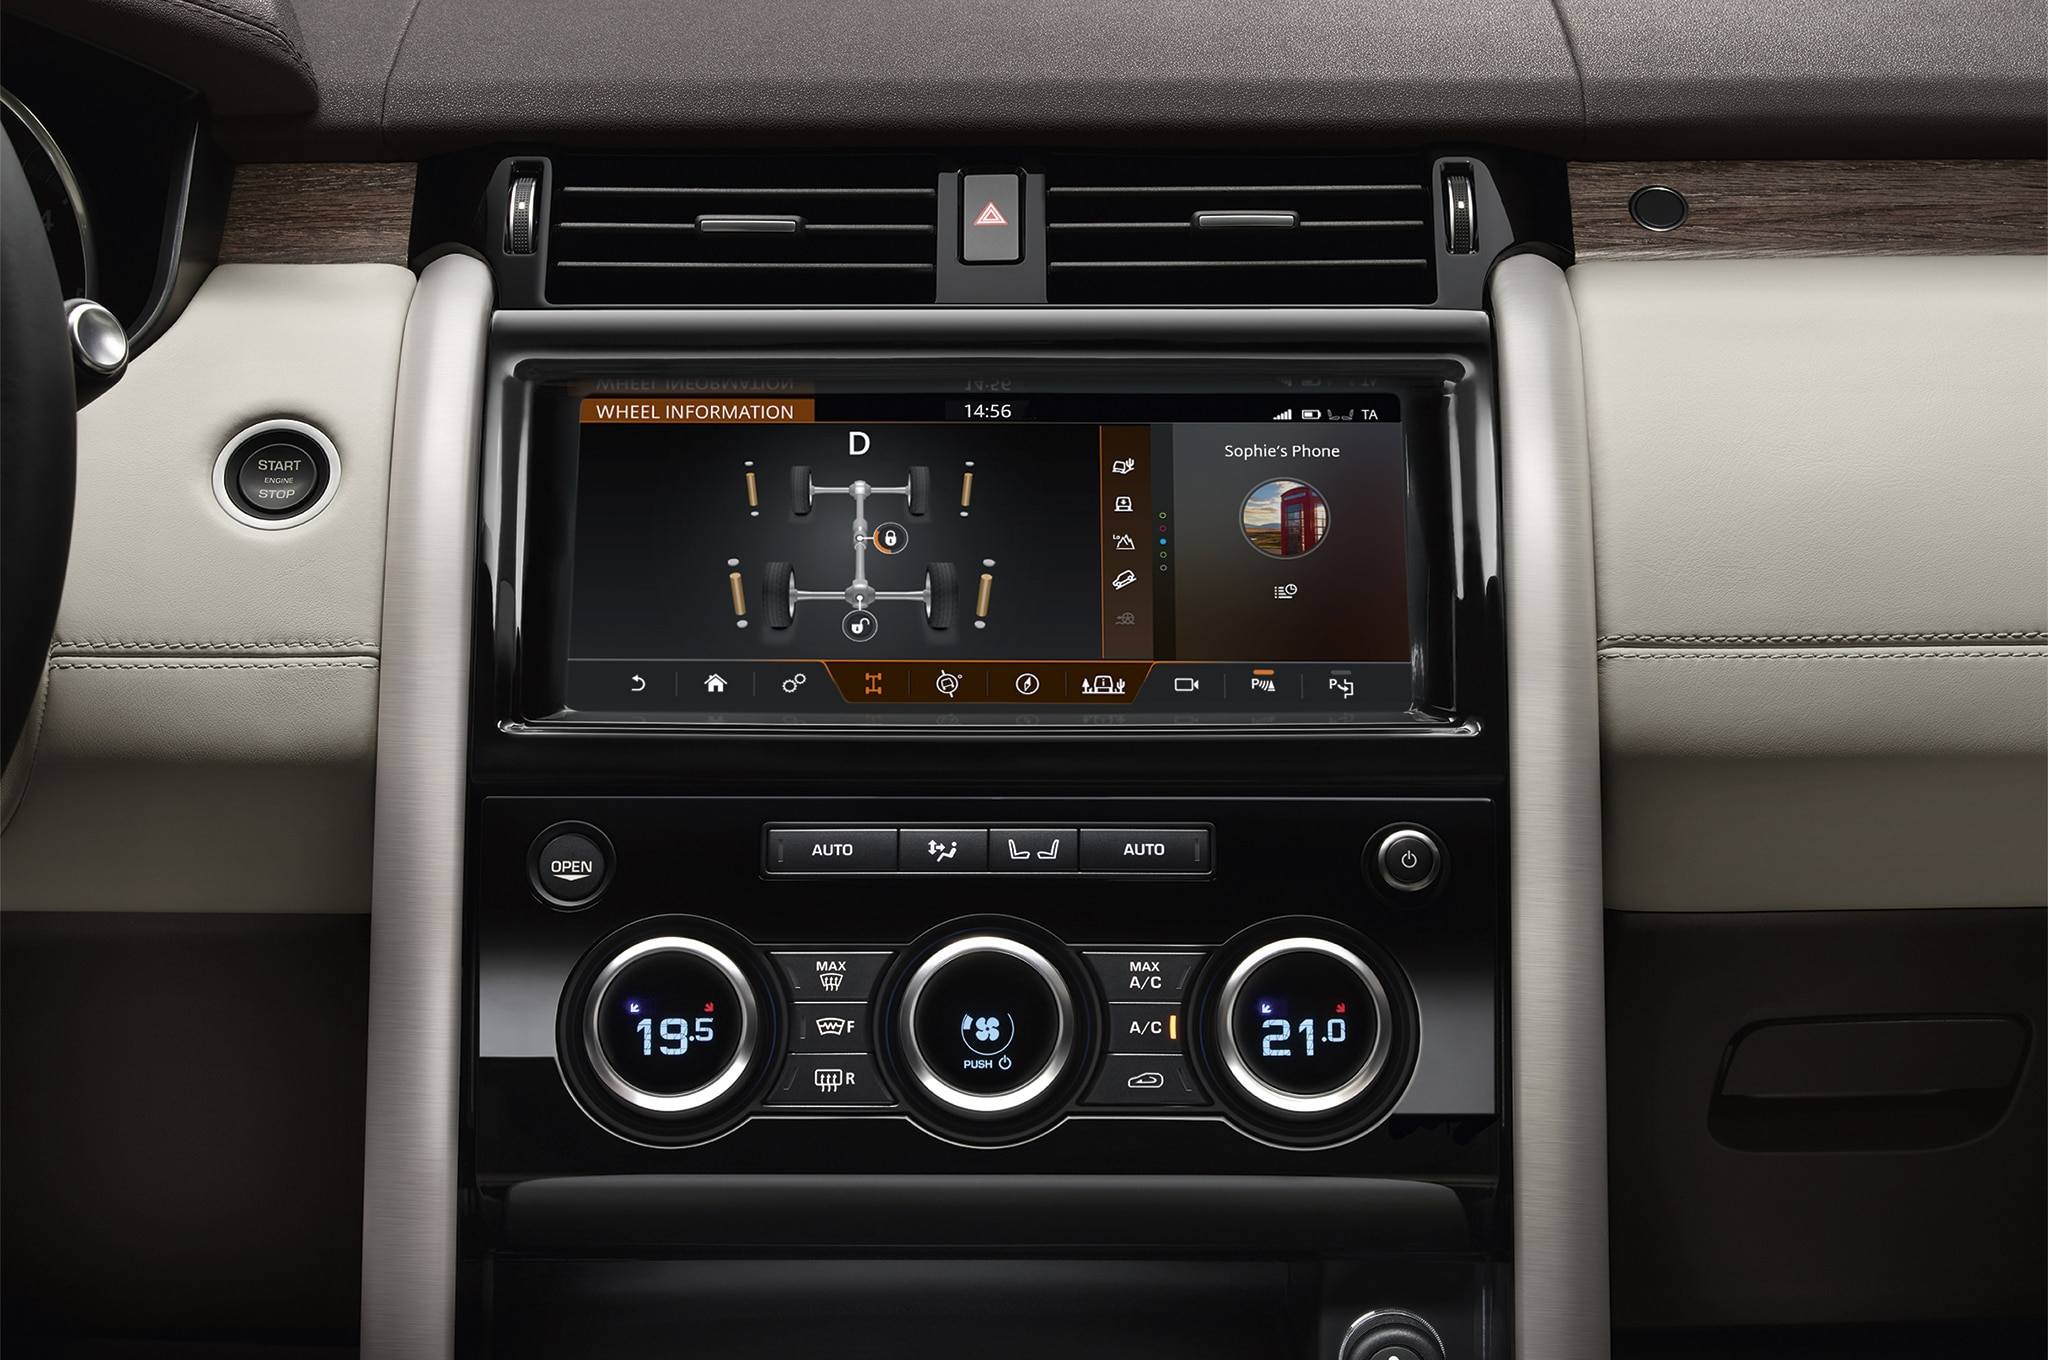 2017 Land Rover Discovery circulation controls